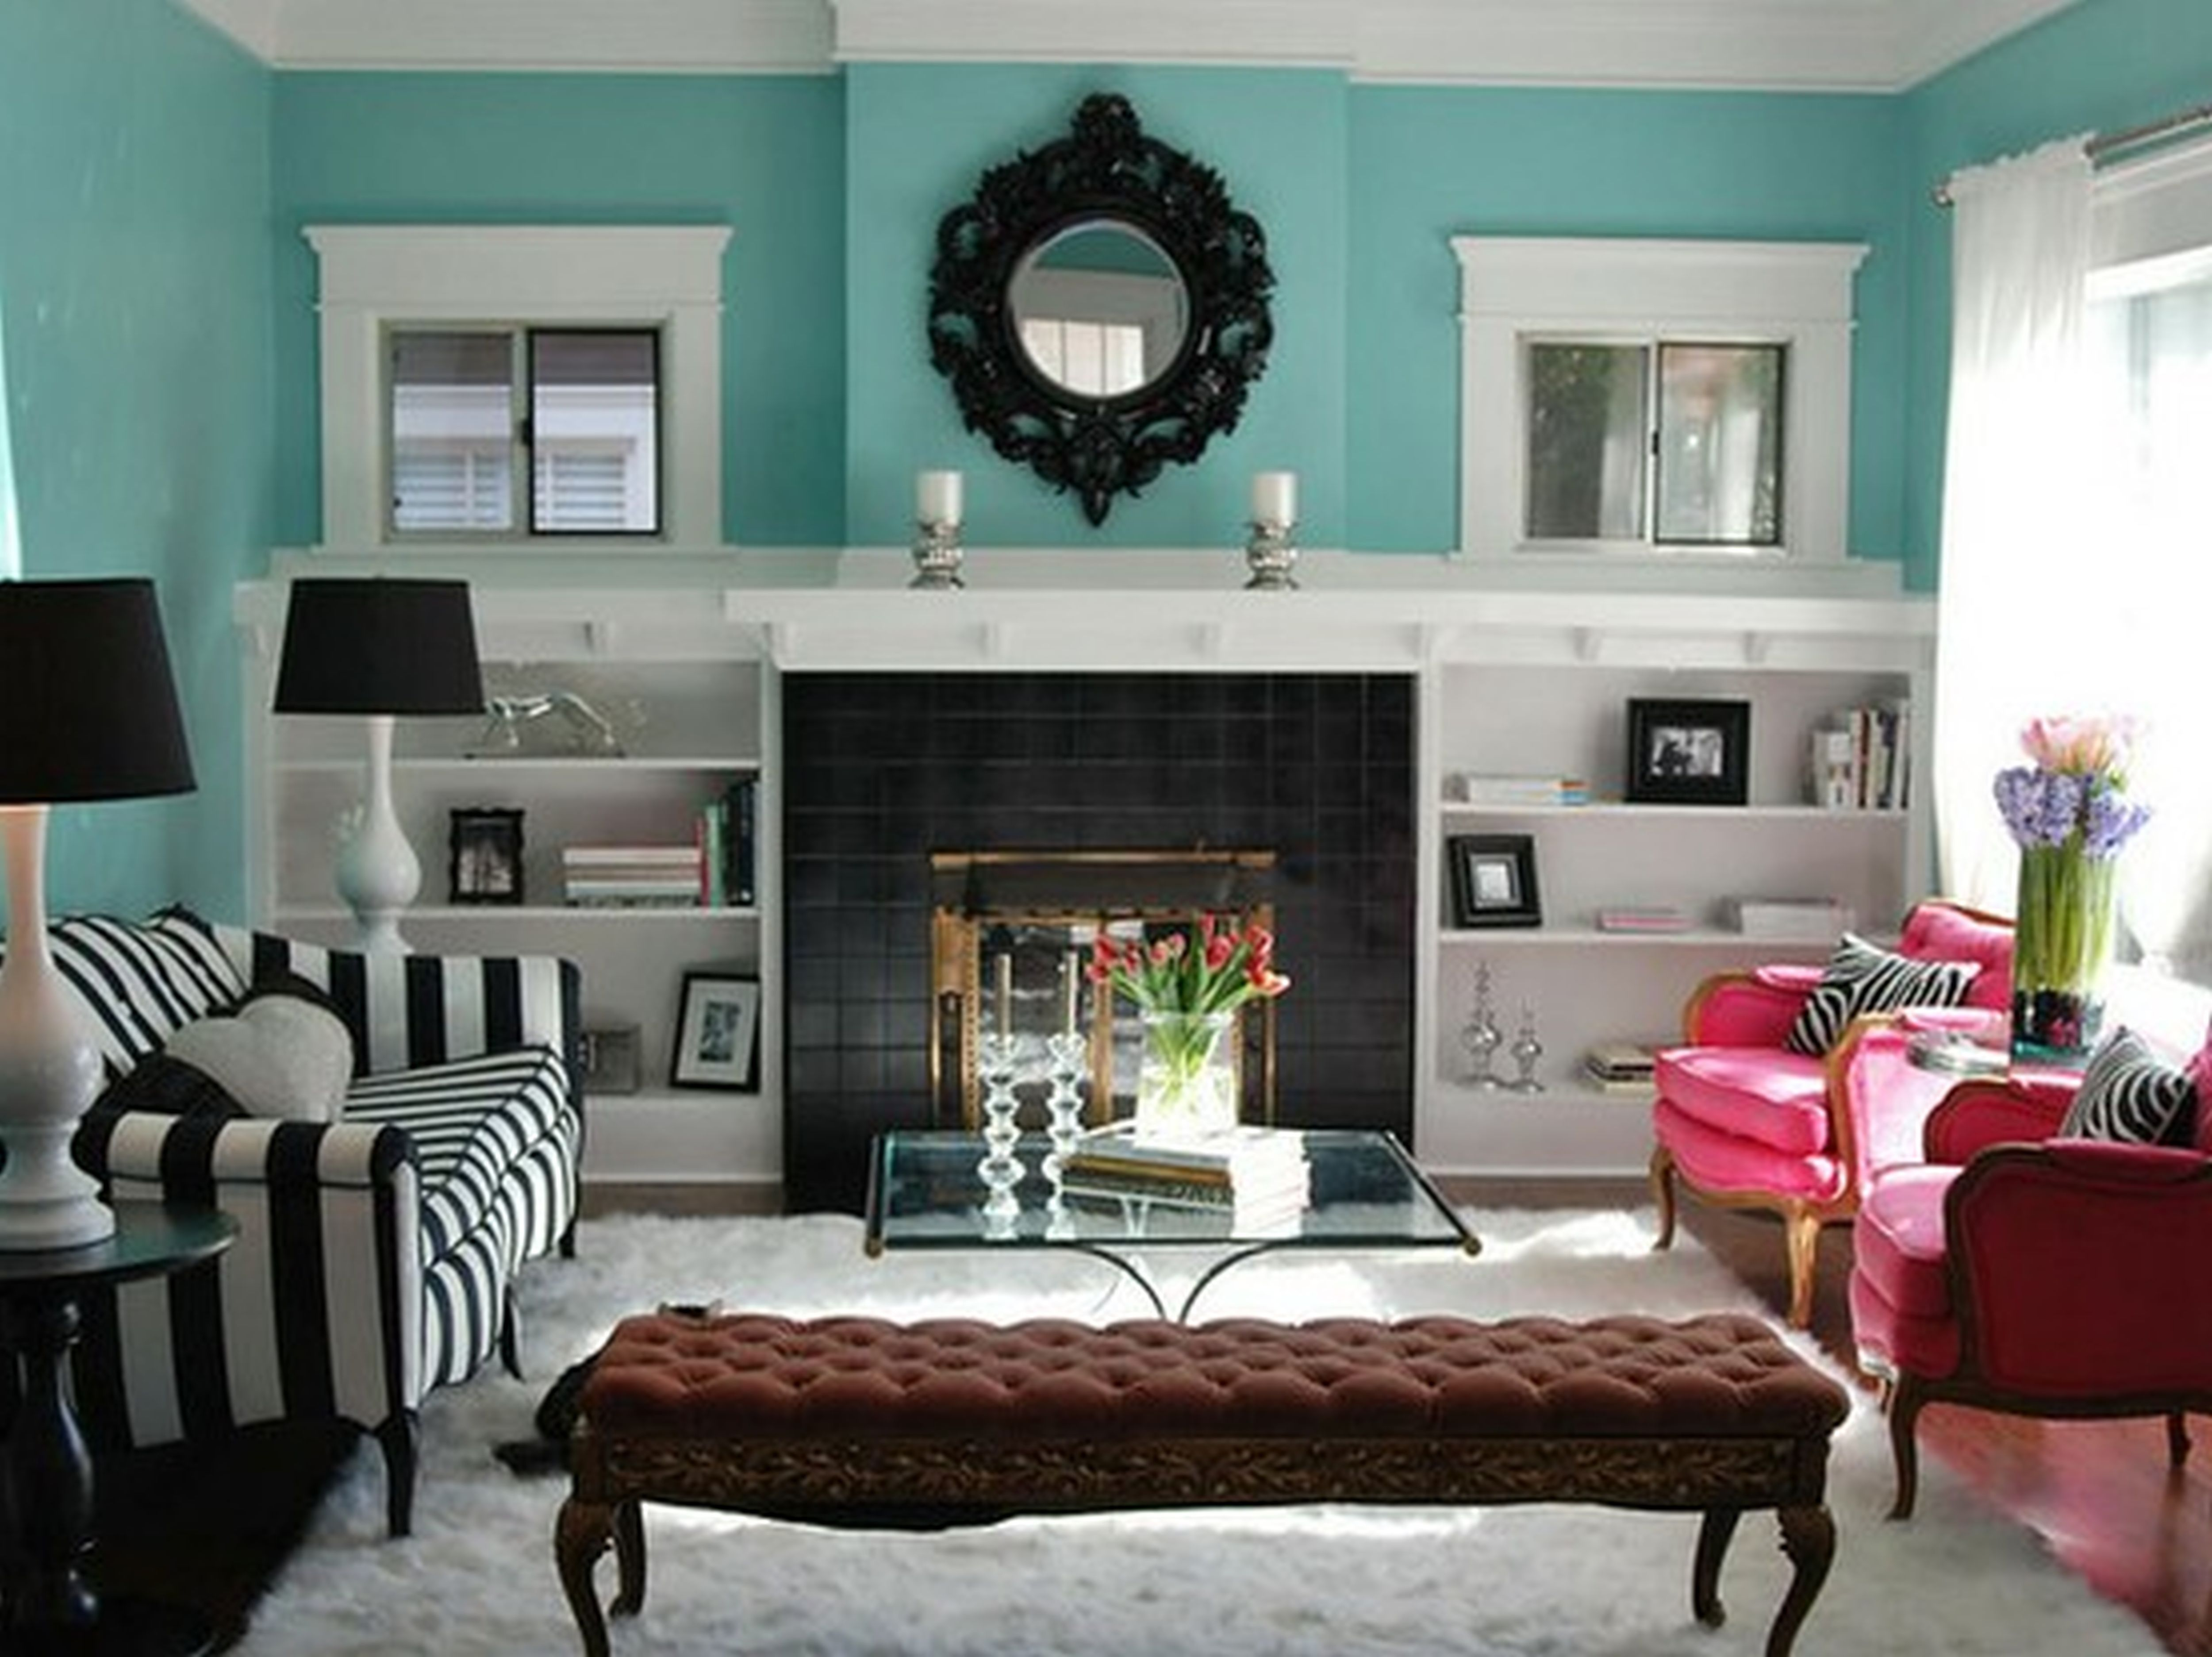 Near black sofa in interior design ideas living room on bright wall - Putting Some Efforts In Your Classic Living Room Can Make You Happy Forever After Living Room Ideas Pinterest Living Rooms Living Room Ideas And Room